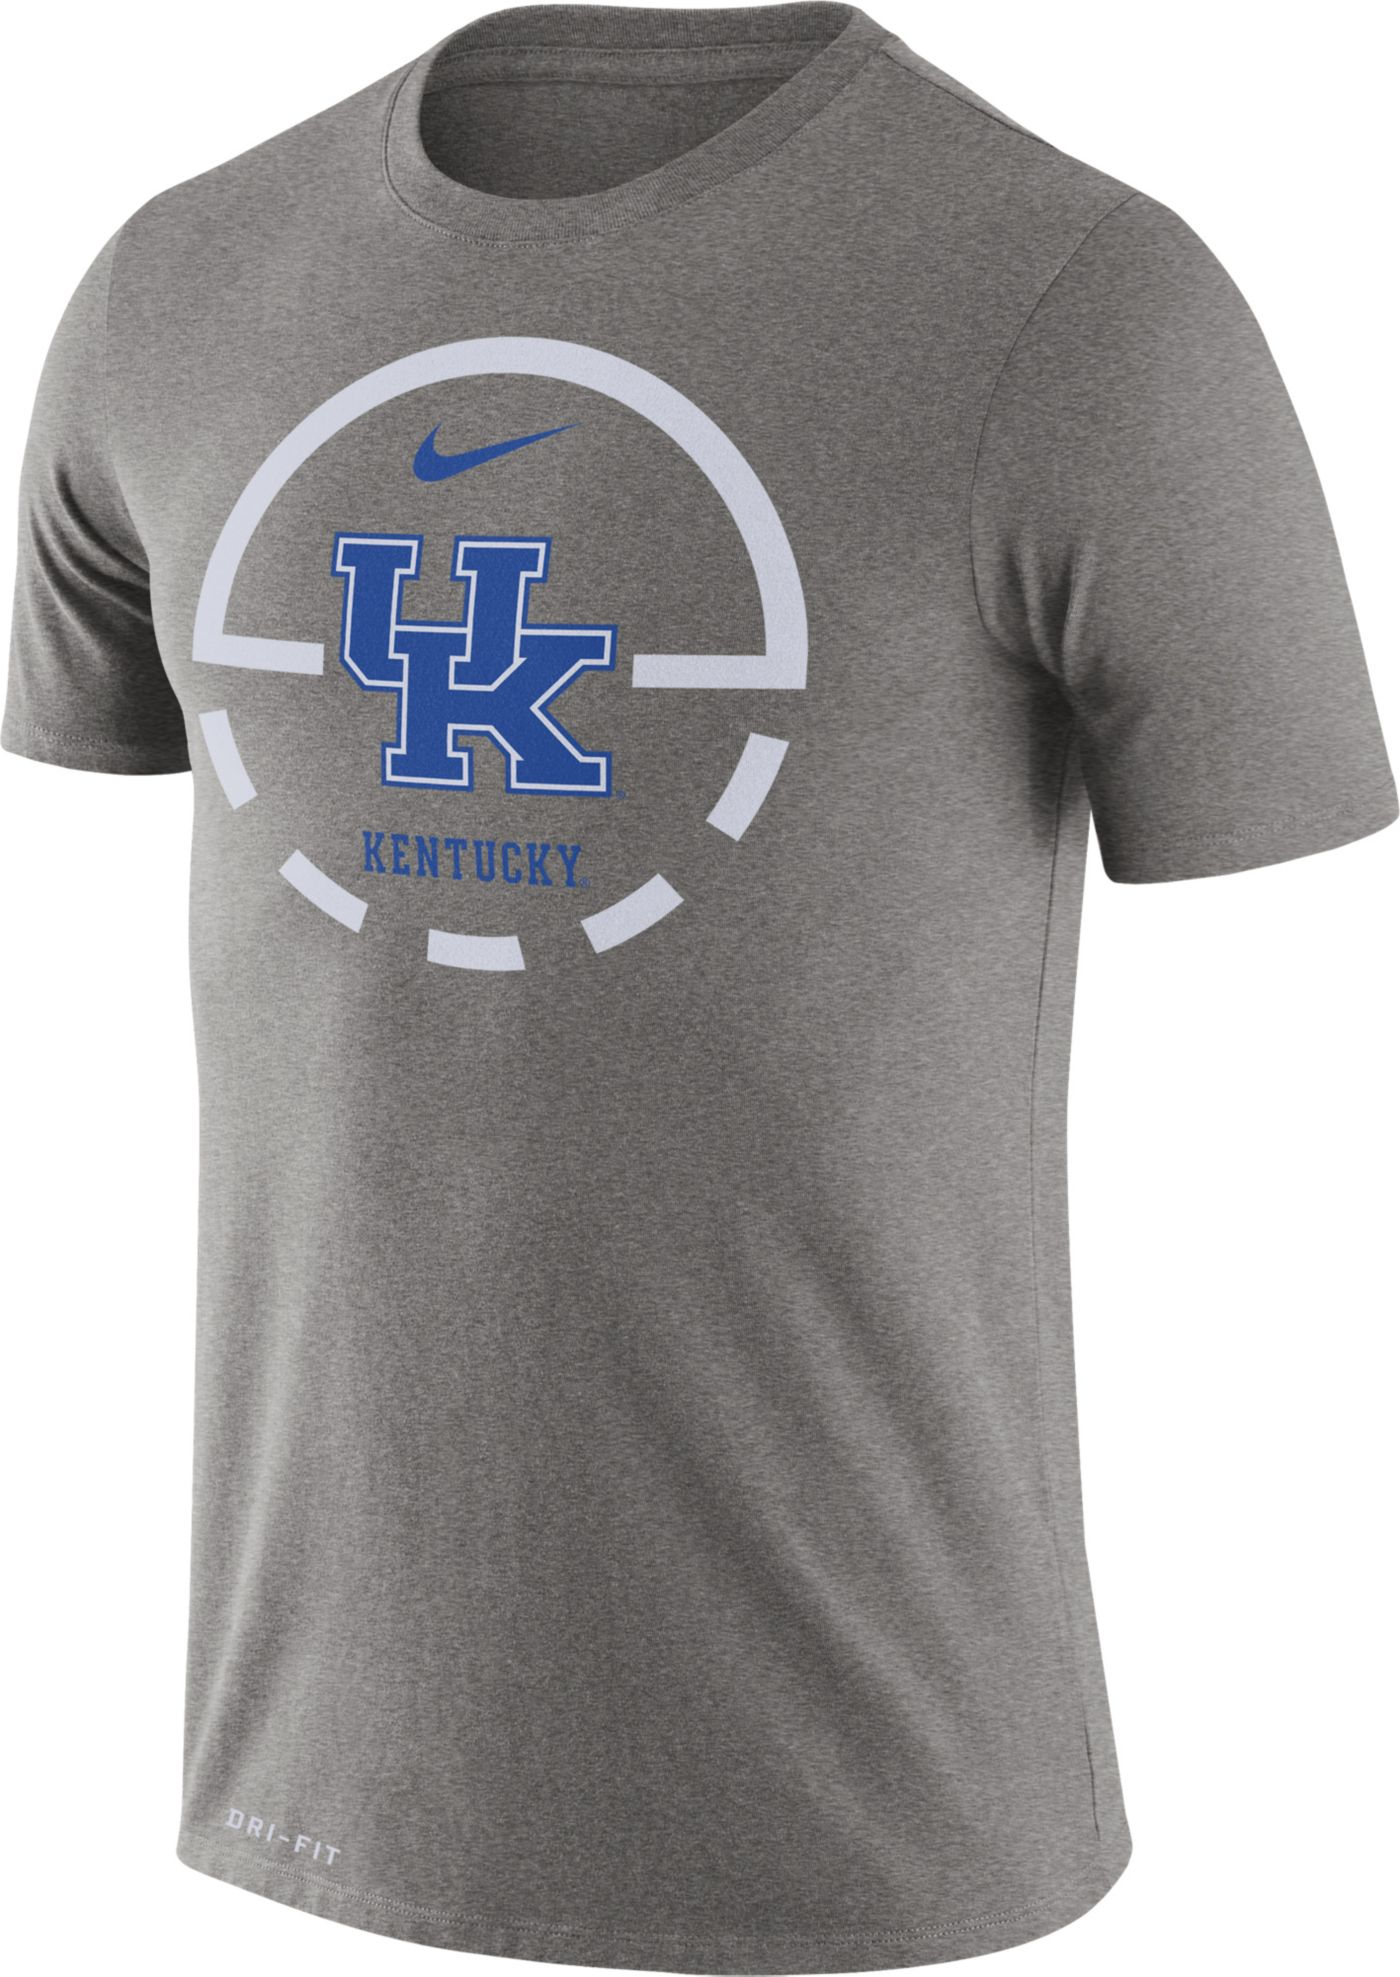 Nike Men's Kentucky Wildcats Grey Legend Basketball Key T-Shirt